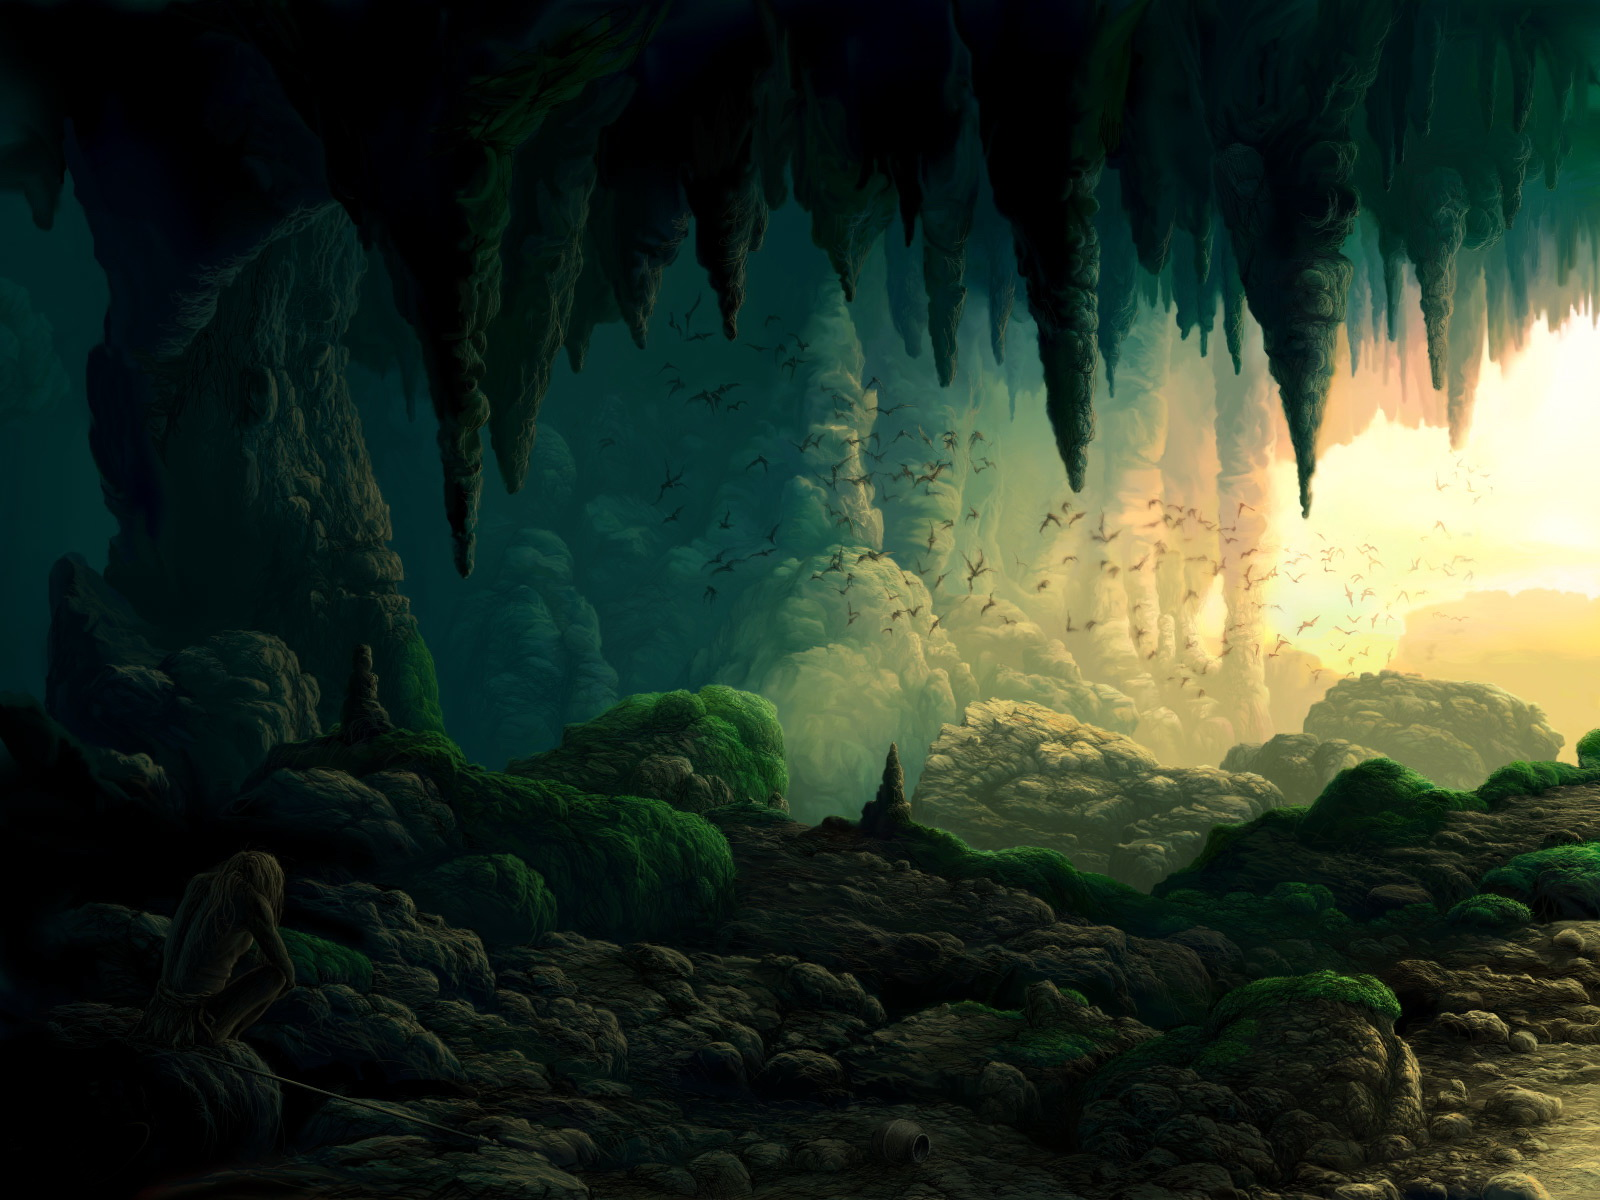 cave deep in the forest forums myanimelist net